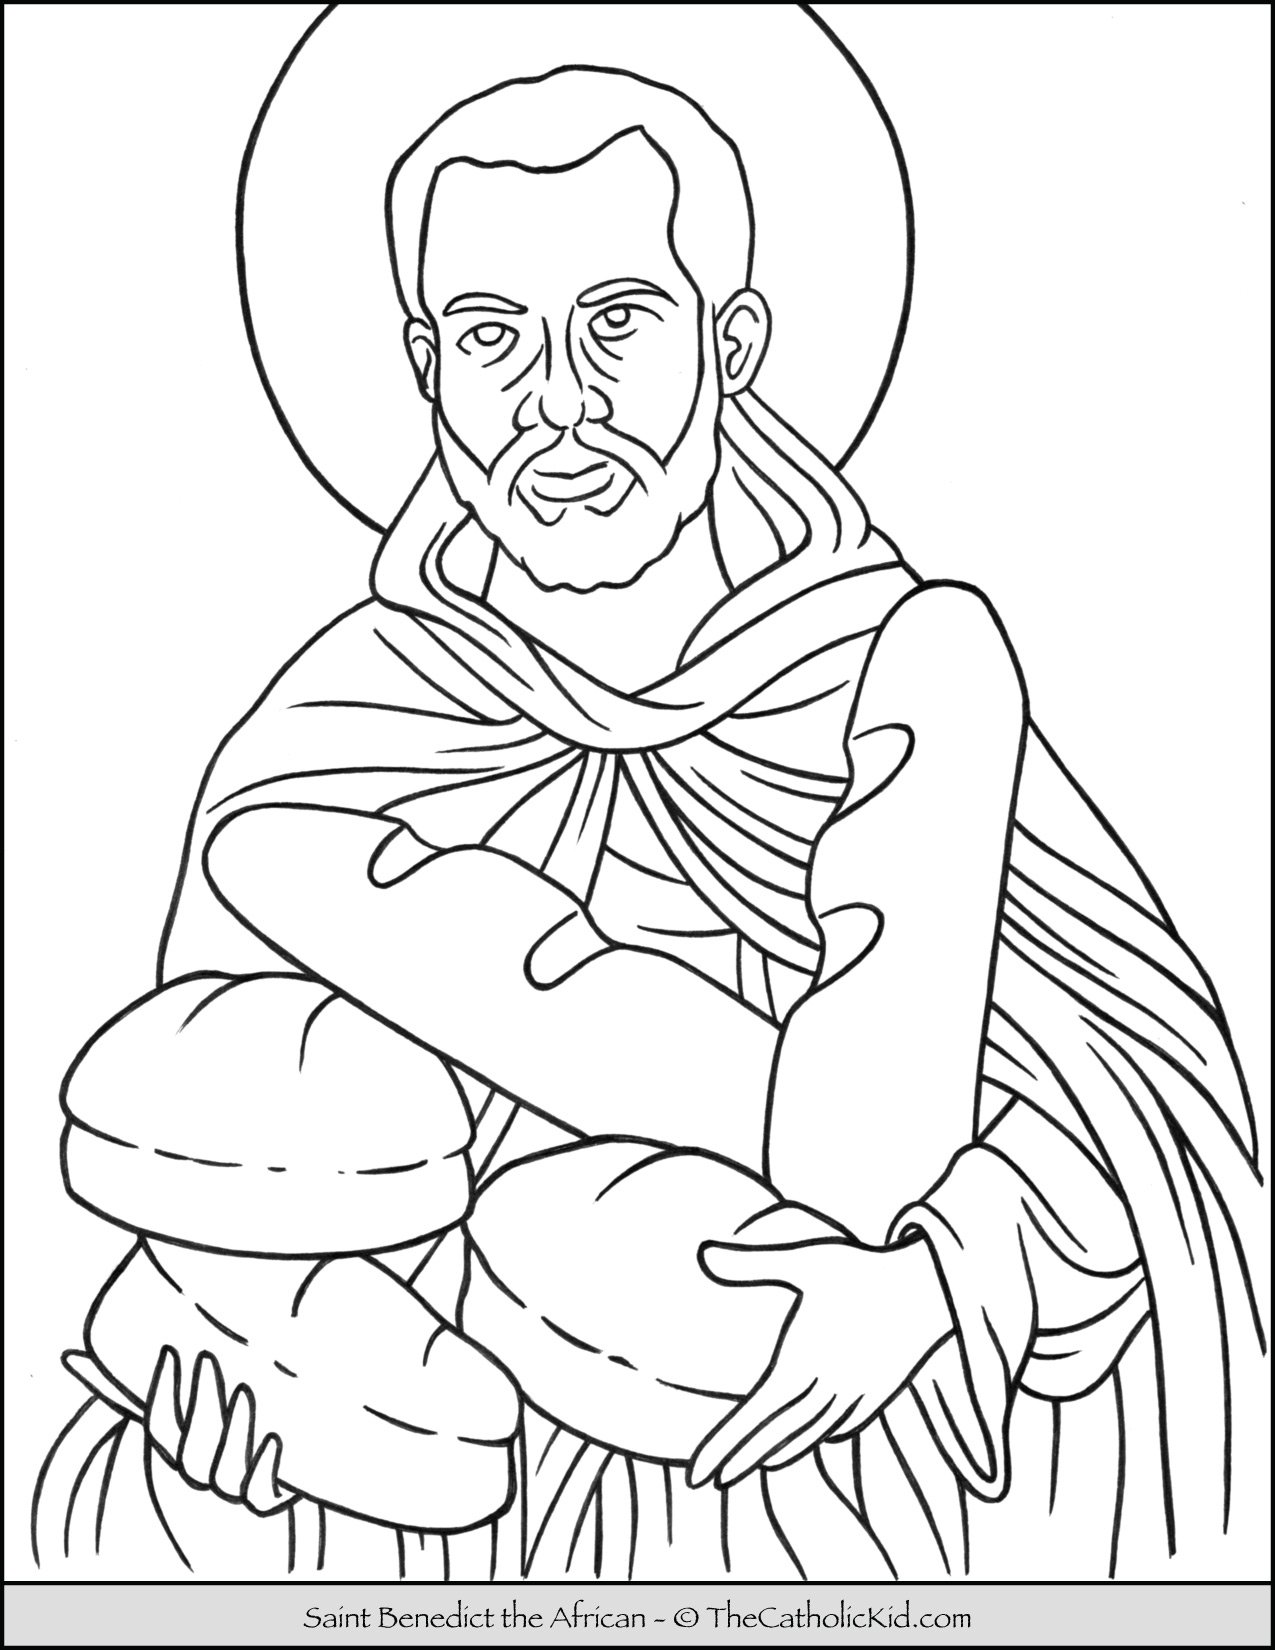 Saint Benedict the African Coloring Page